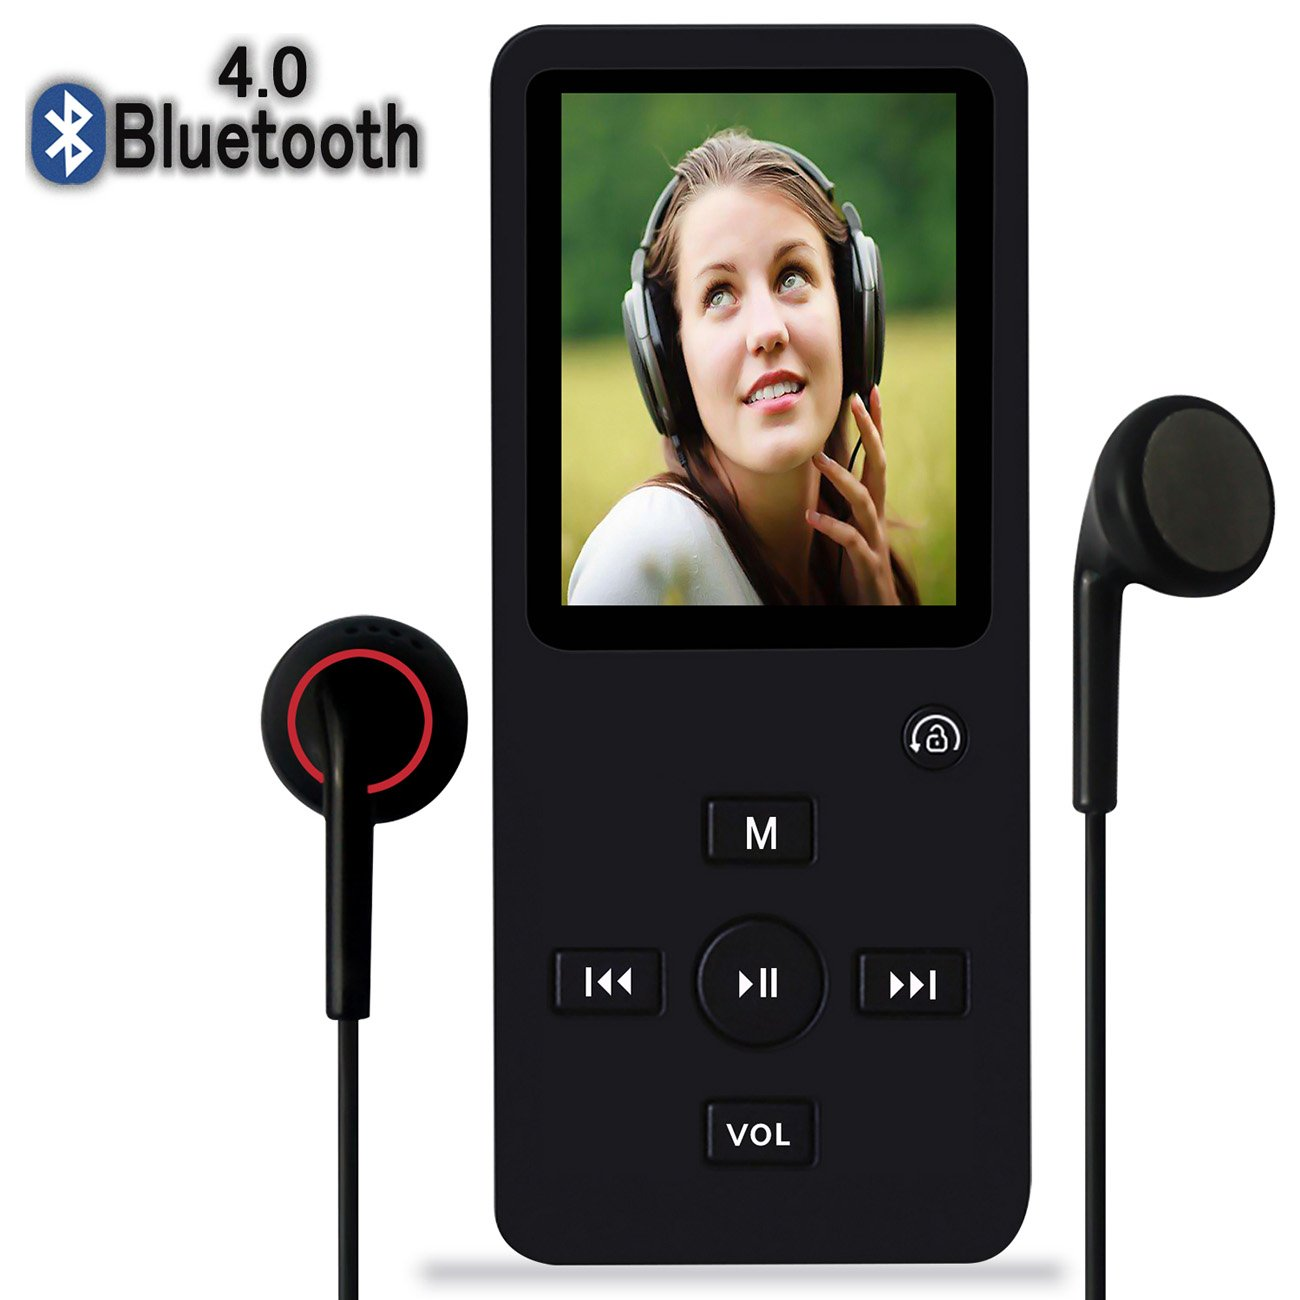 MP3 Player with Bluetooth,8GB Bluetooth MP3 Music Player with FM Radio/Speaker,Lossless Sound,Support Shuffle,Voice Recorder,Video,Photo,EBook,Pedometer for Running Walking